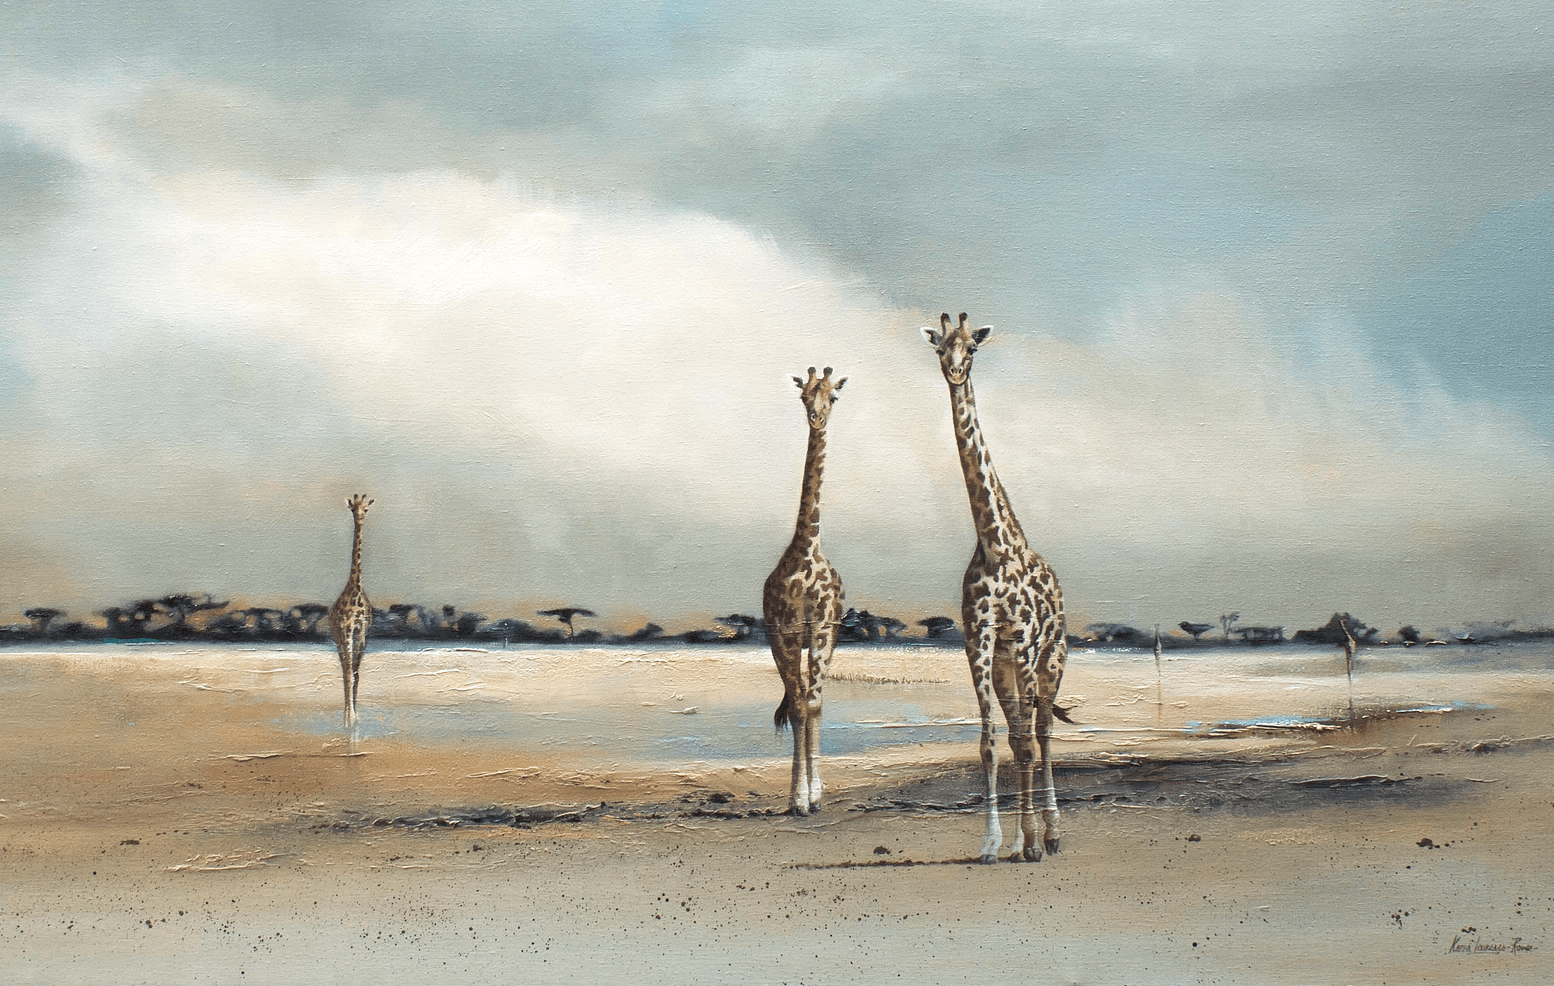 Lake Bed Giraffes